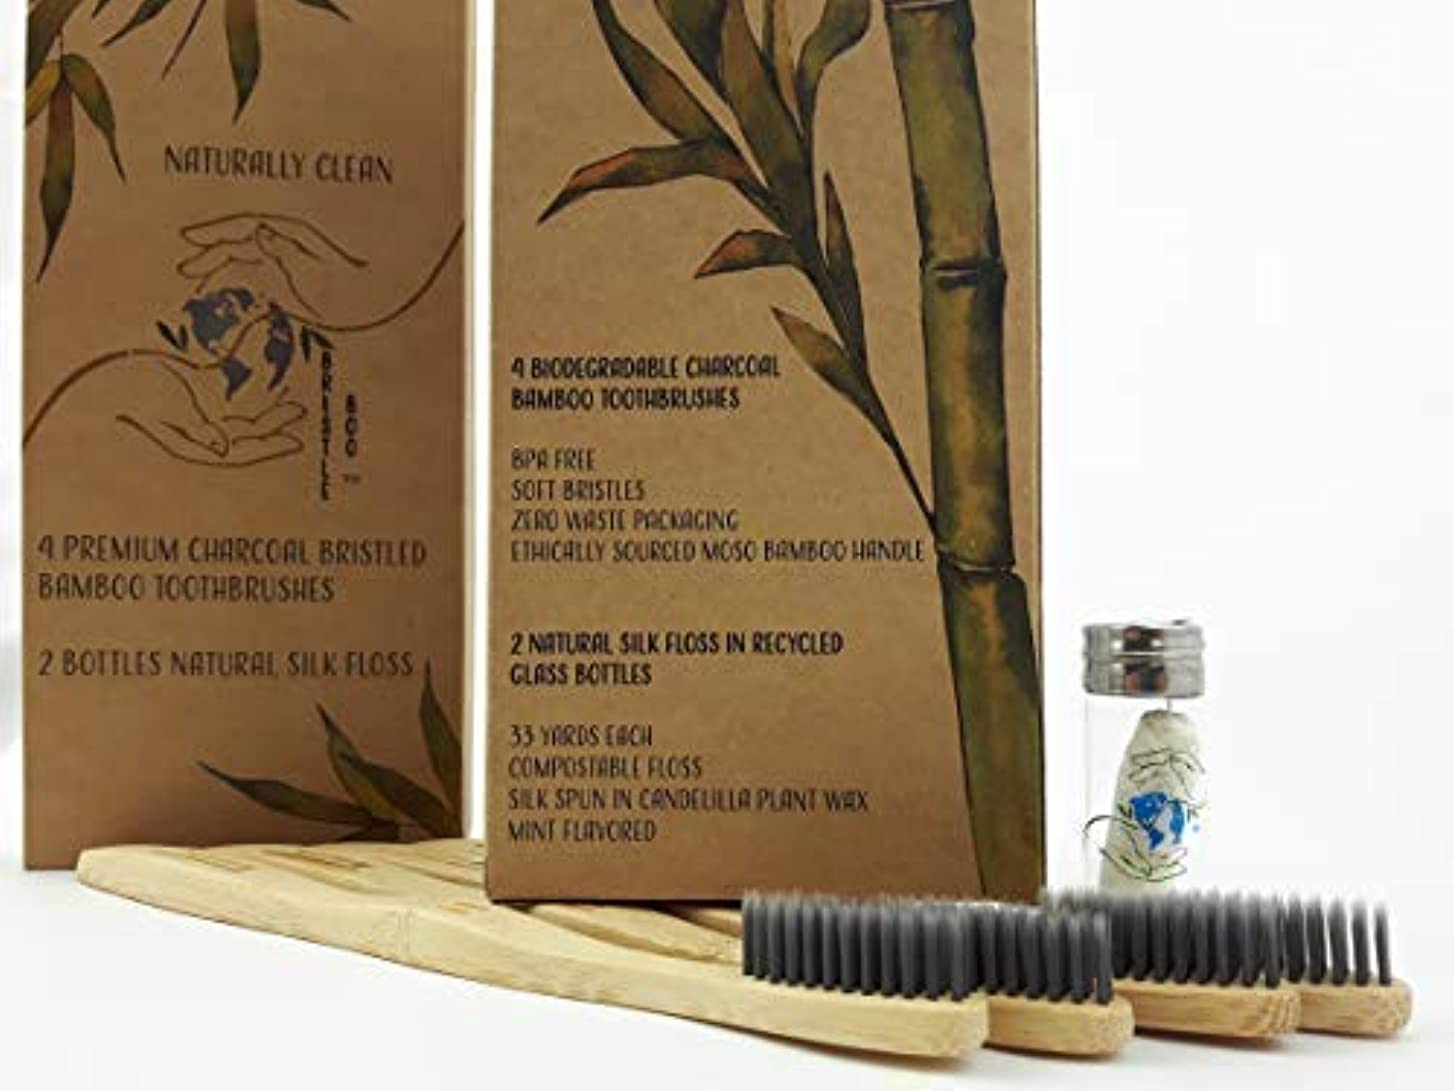 トレイル酔った偽物All Natural, Eco Friendly, Organic | 4 Soft, Charcoal-Infused Premium Bamboo Toothbrushes and 2 Glass Bottles...